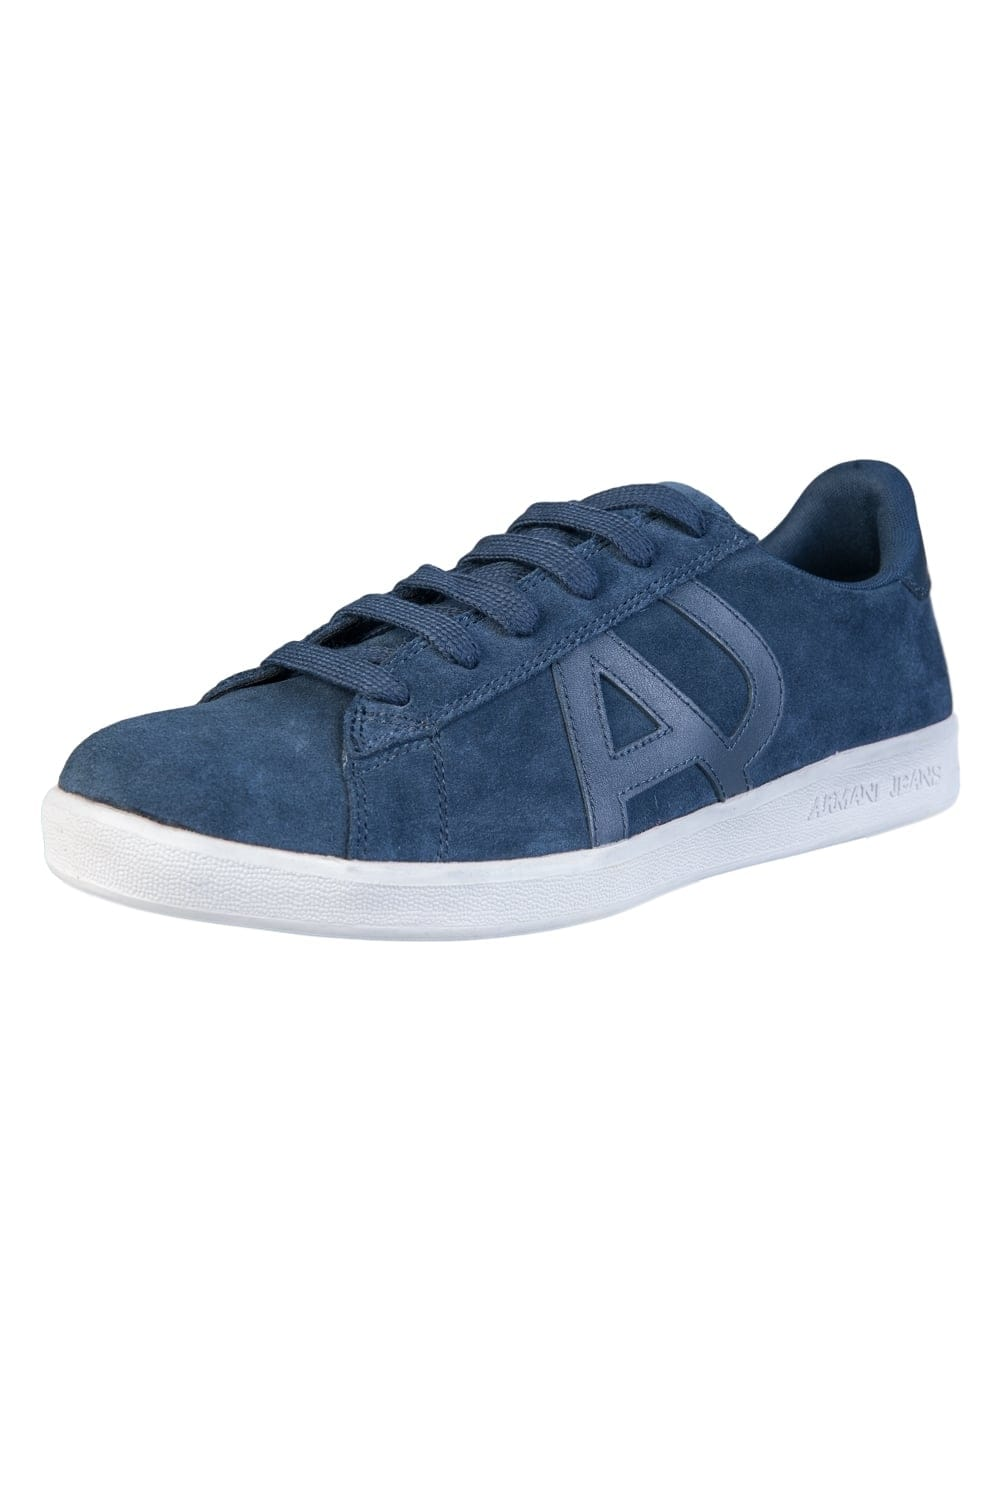 498faabced5 Armani Jeans Trainers 935565 CC501 - Footwear from Sage Clothing UK